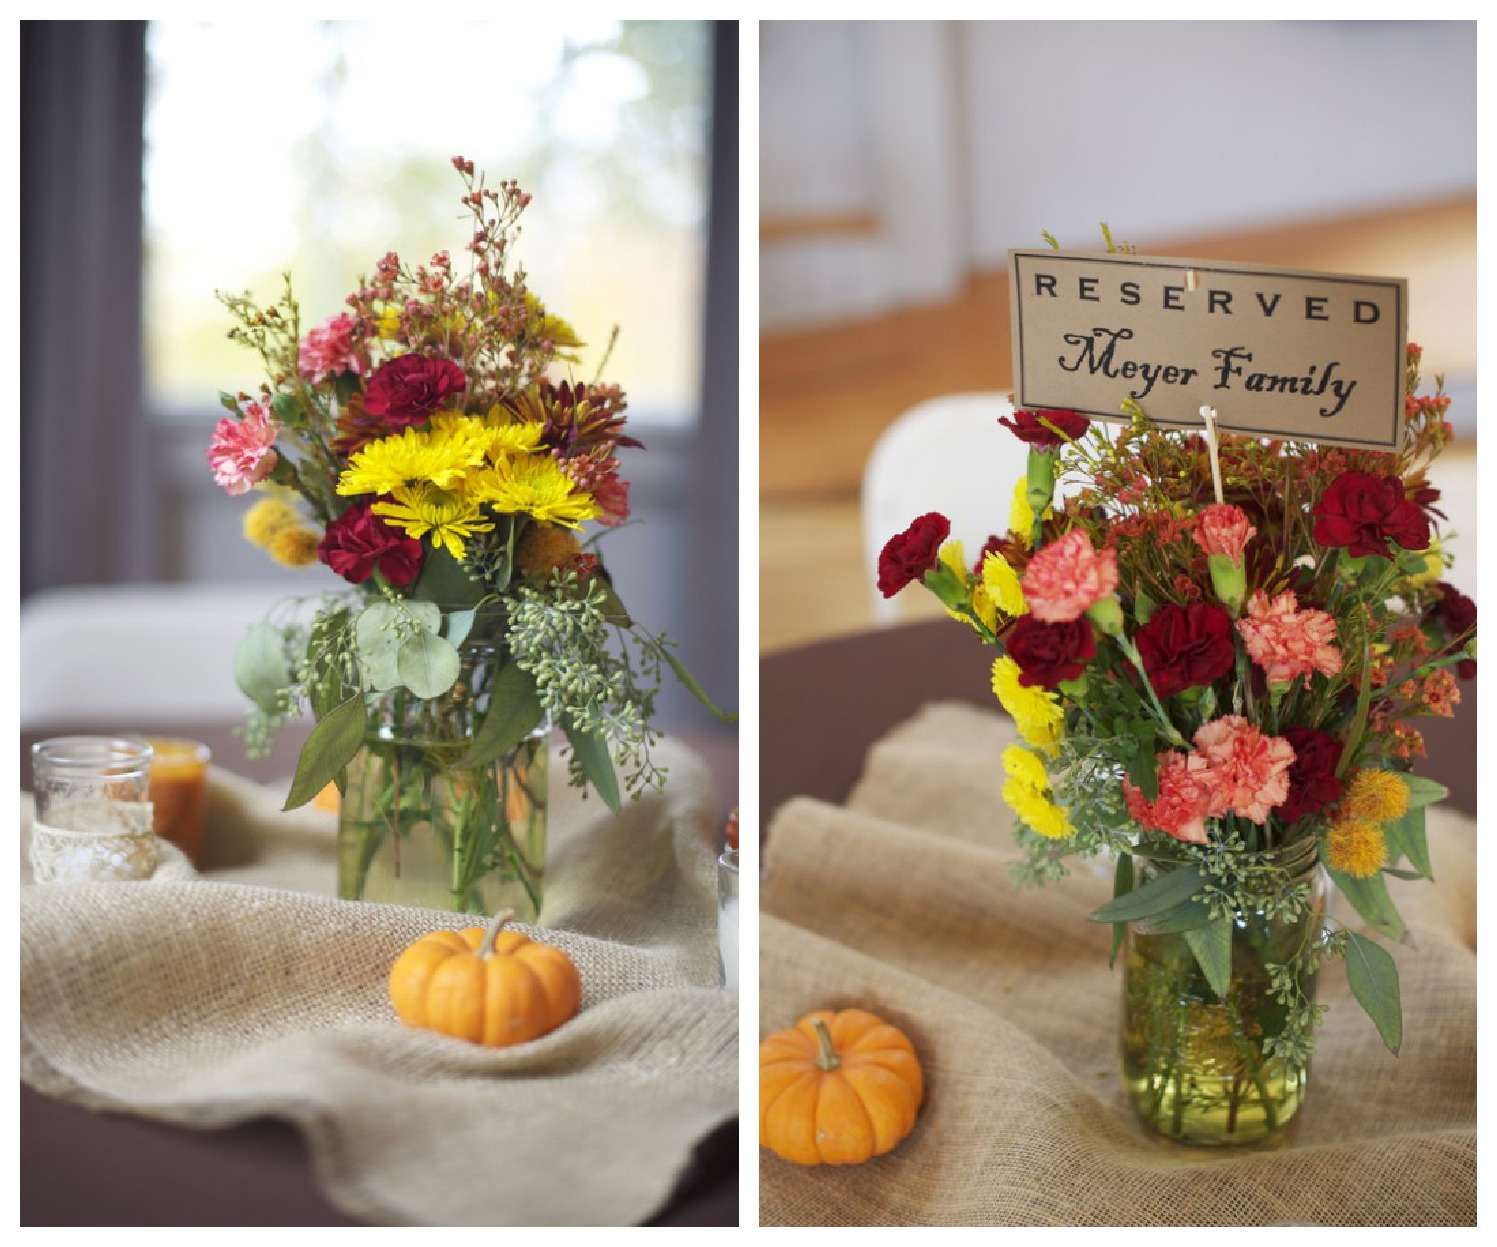 Ideas For Fall Wedding Centerpieces: Rustic Wedding Centerpiece Ideas